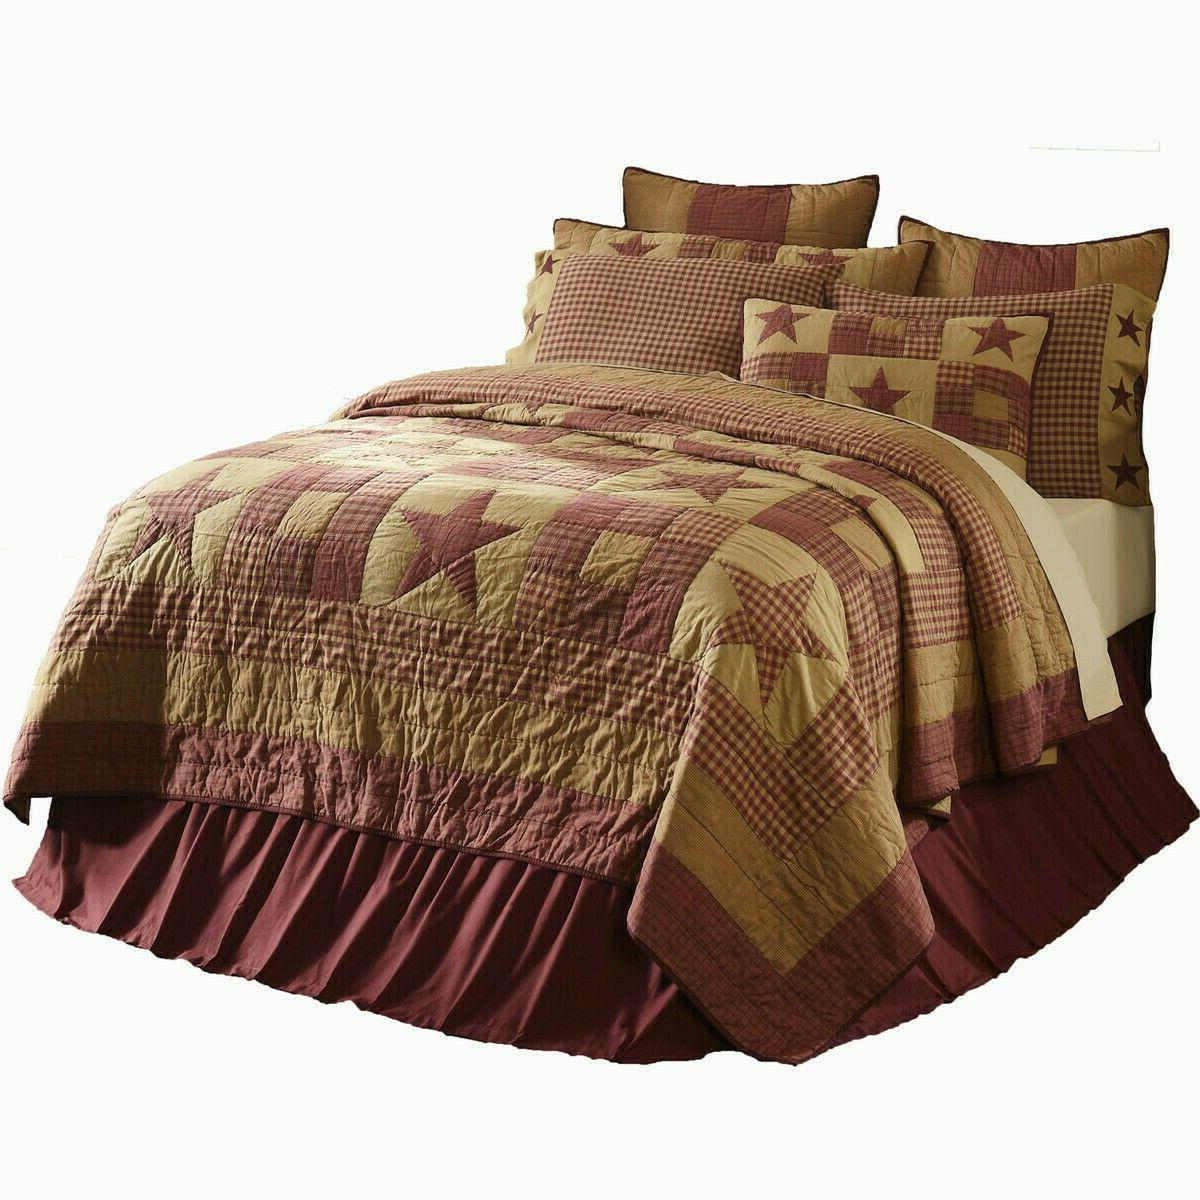 Ninepatch Star Burgundy & Tan LUXURY KING Quilt Set Choices